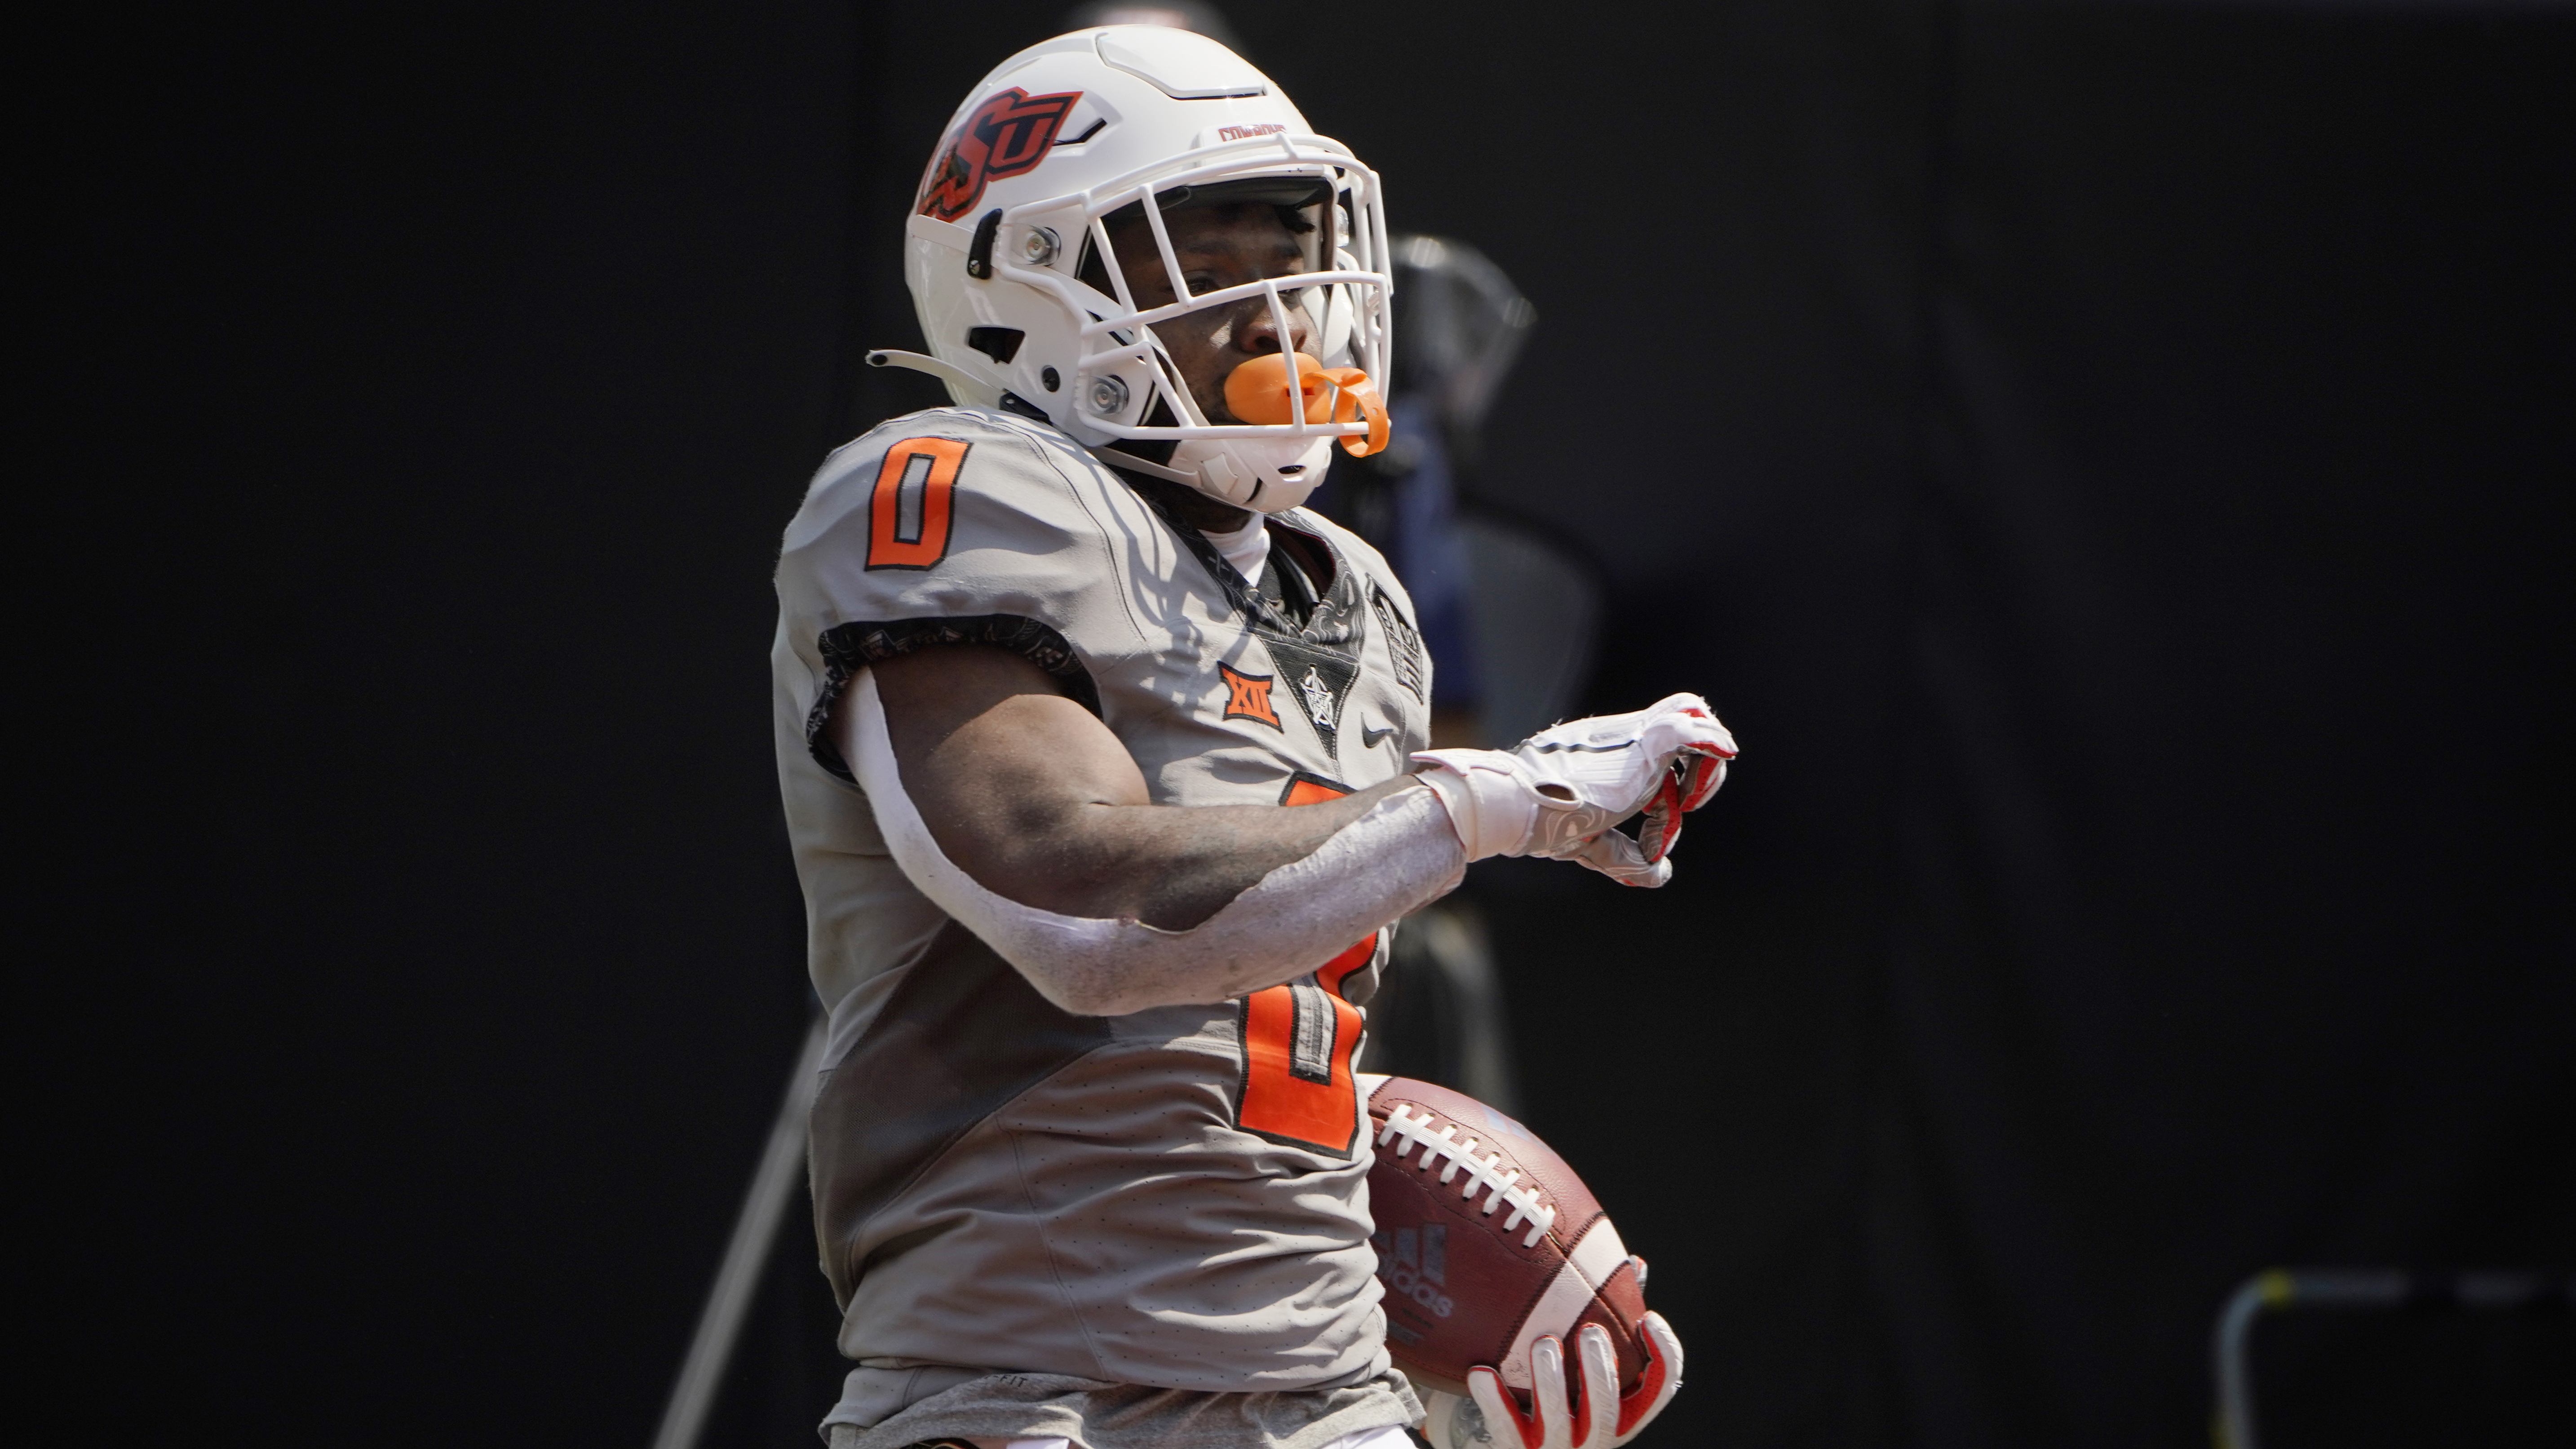 Oklahoma State running back LD Brown during an NCAA college football game against Tulsa.